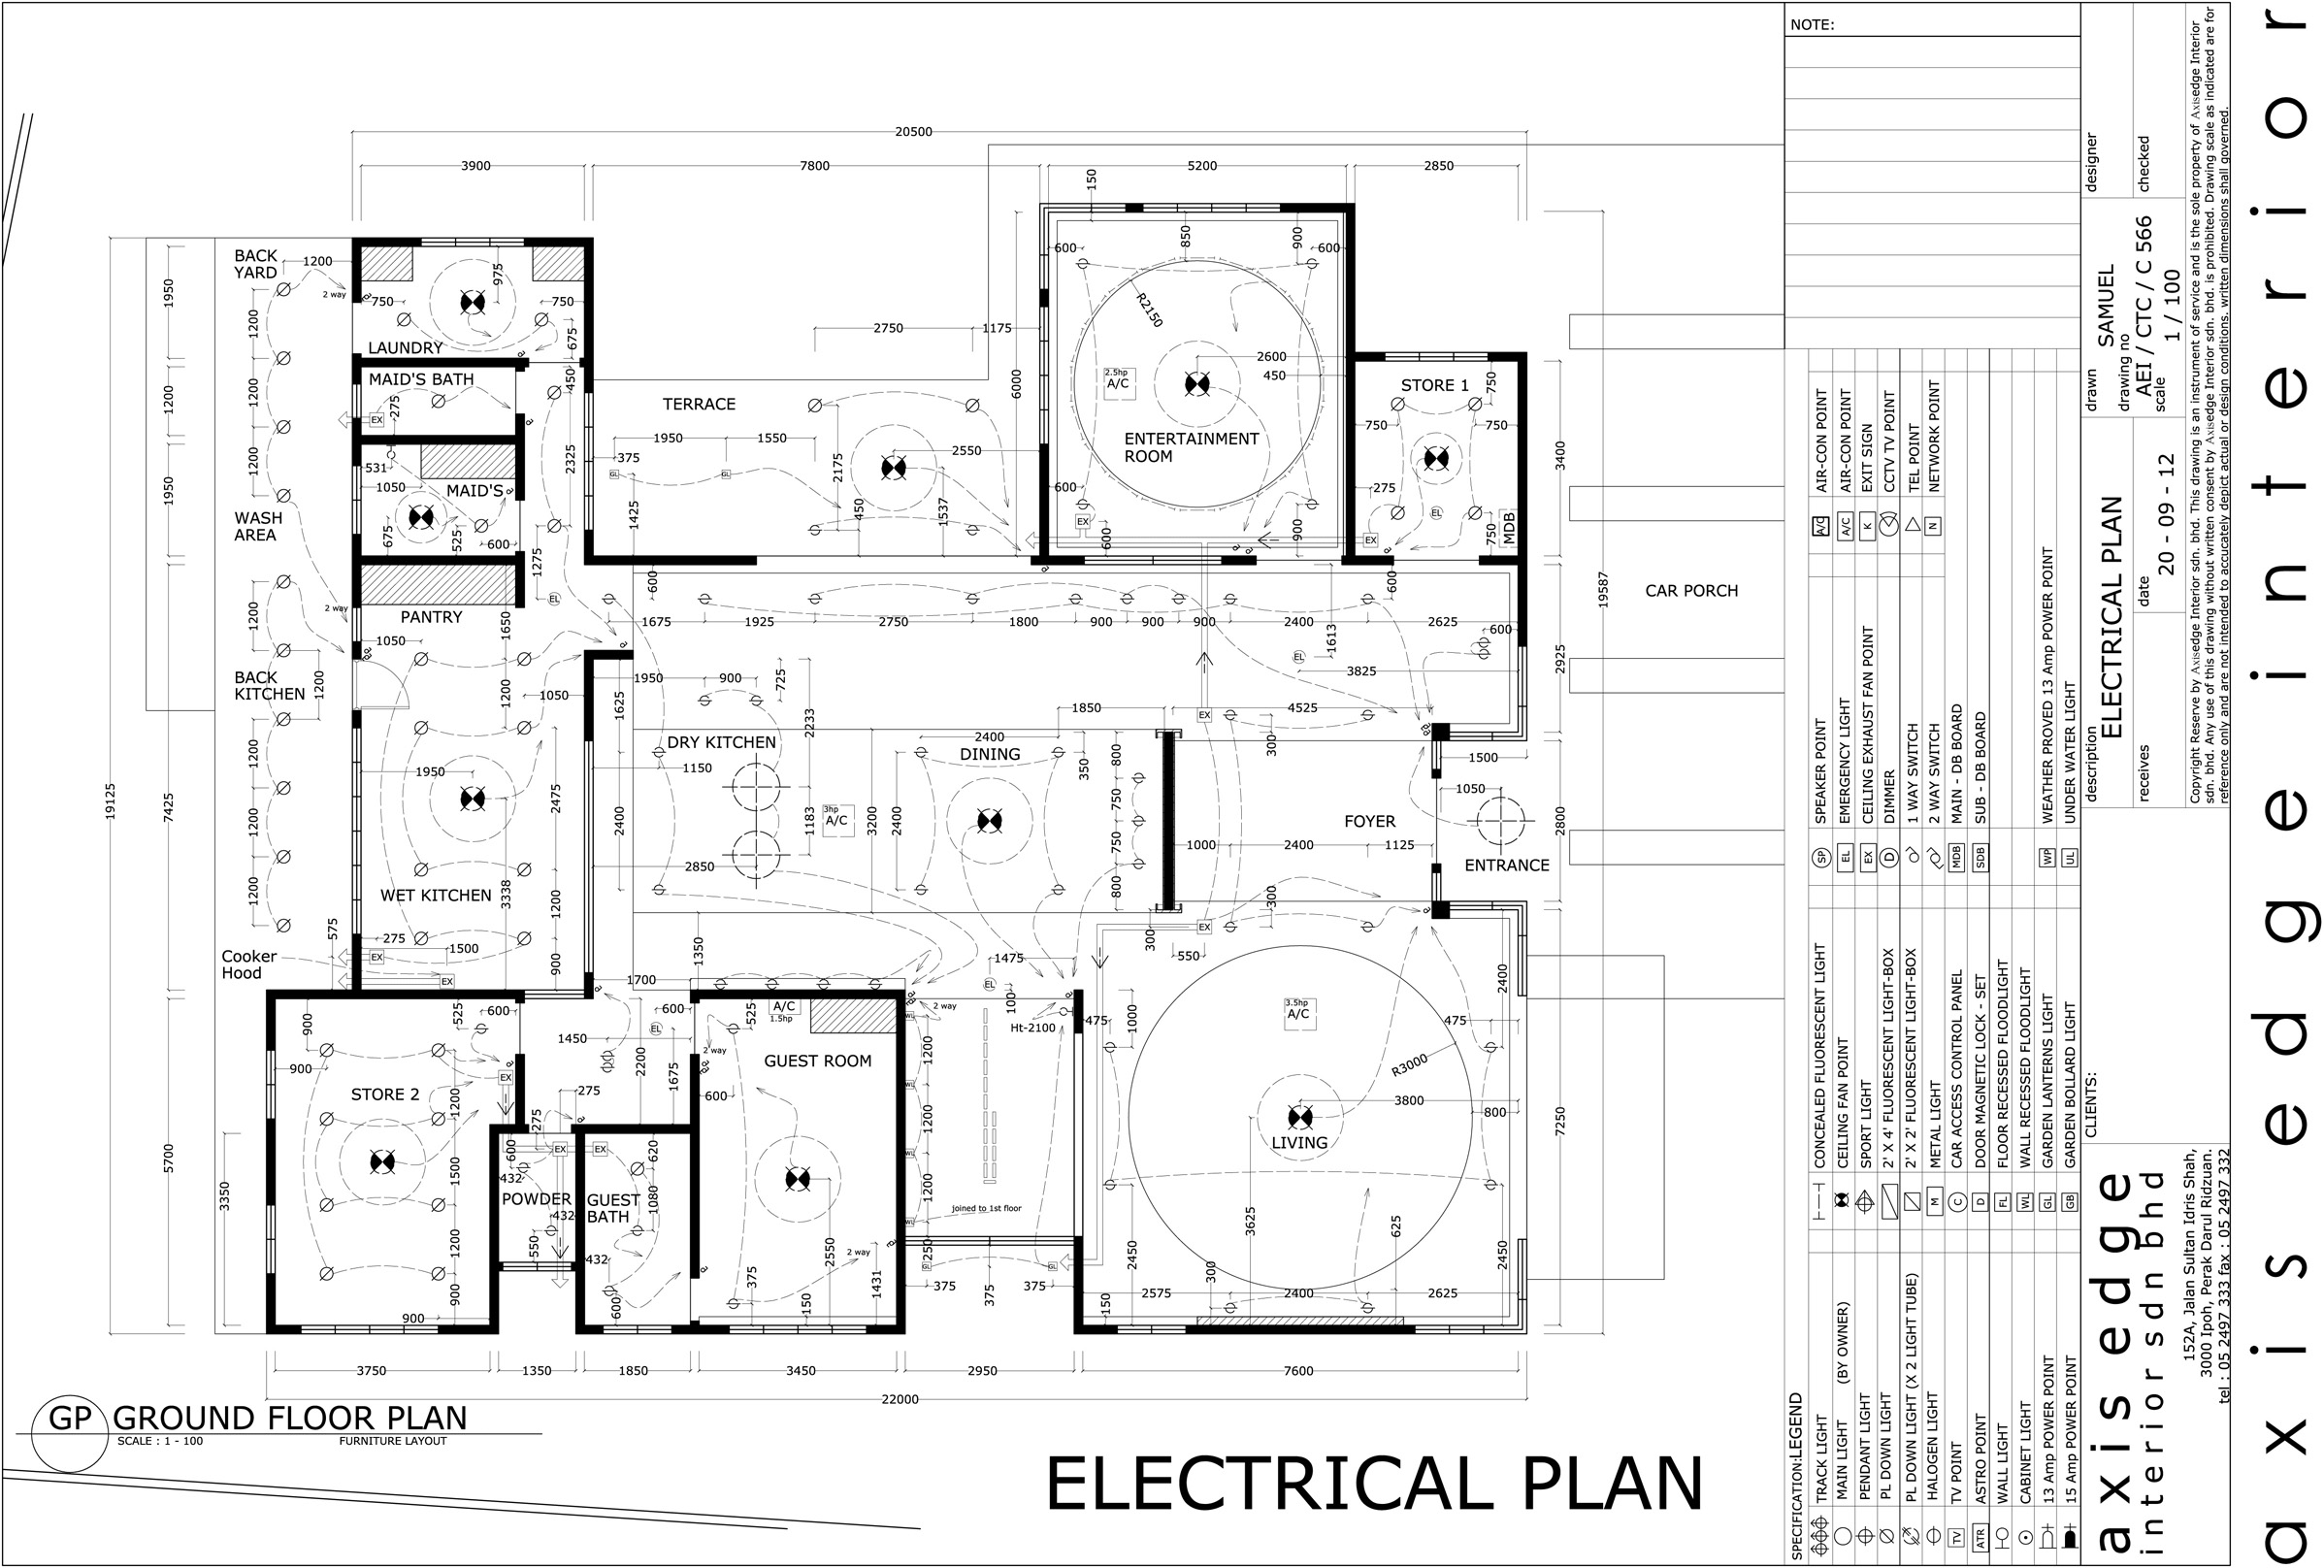 electrical design  electrical design drawings checklist